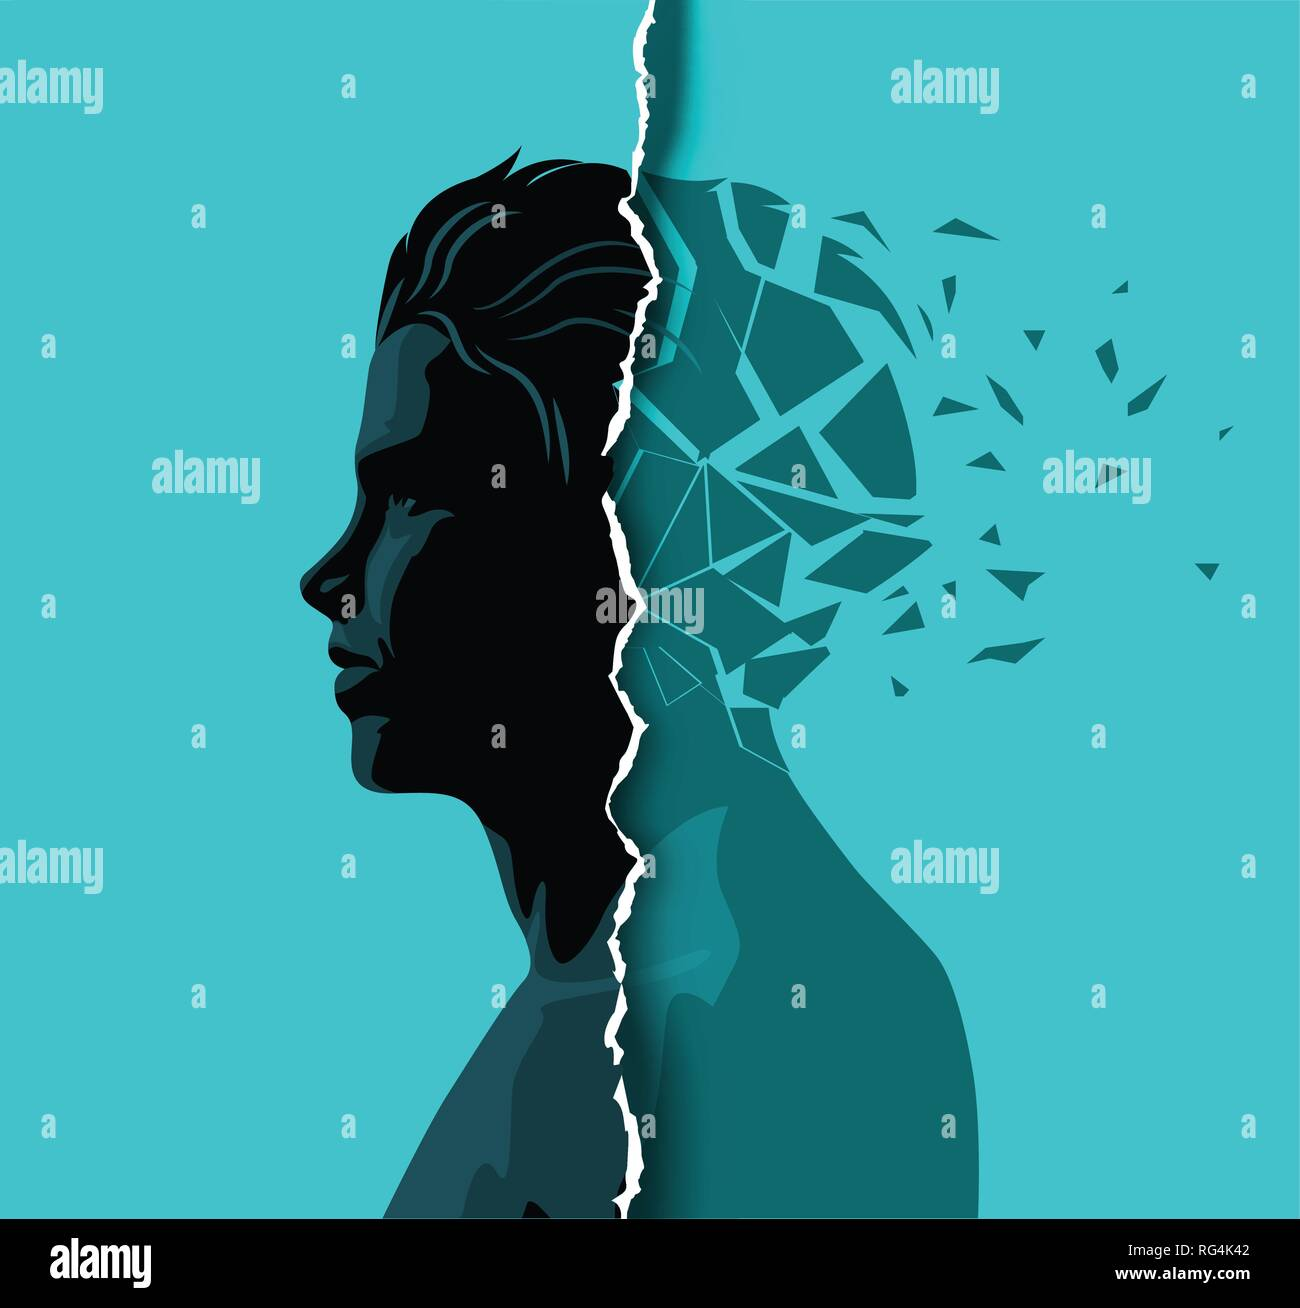 A adult male dealing with mental health issues. Anxiety, mindfulness and awareness concept. Vector illustration. - Stock Vector